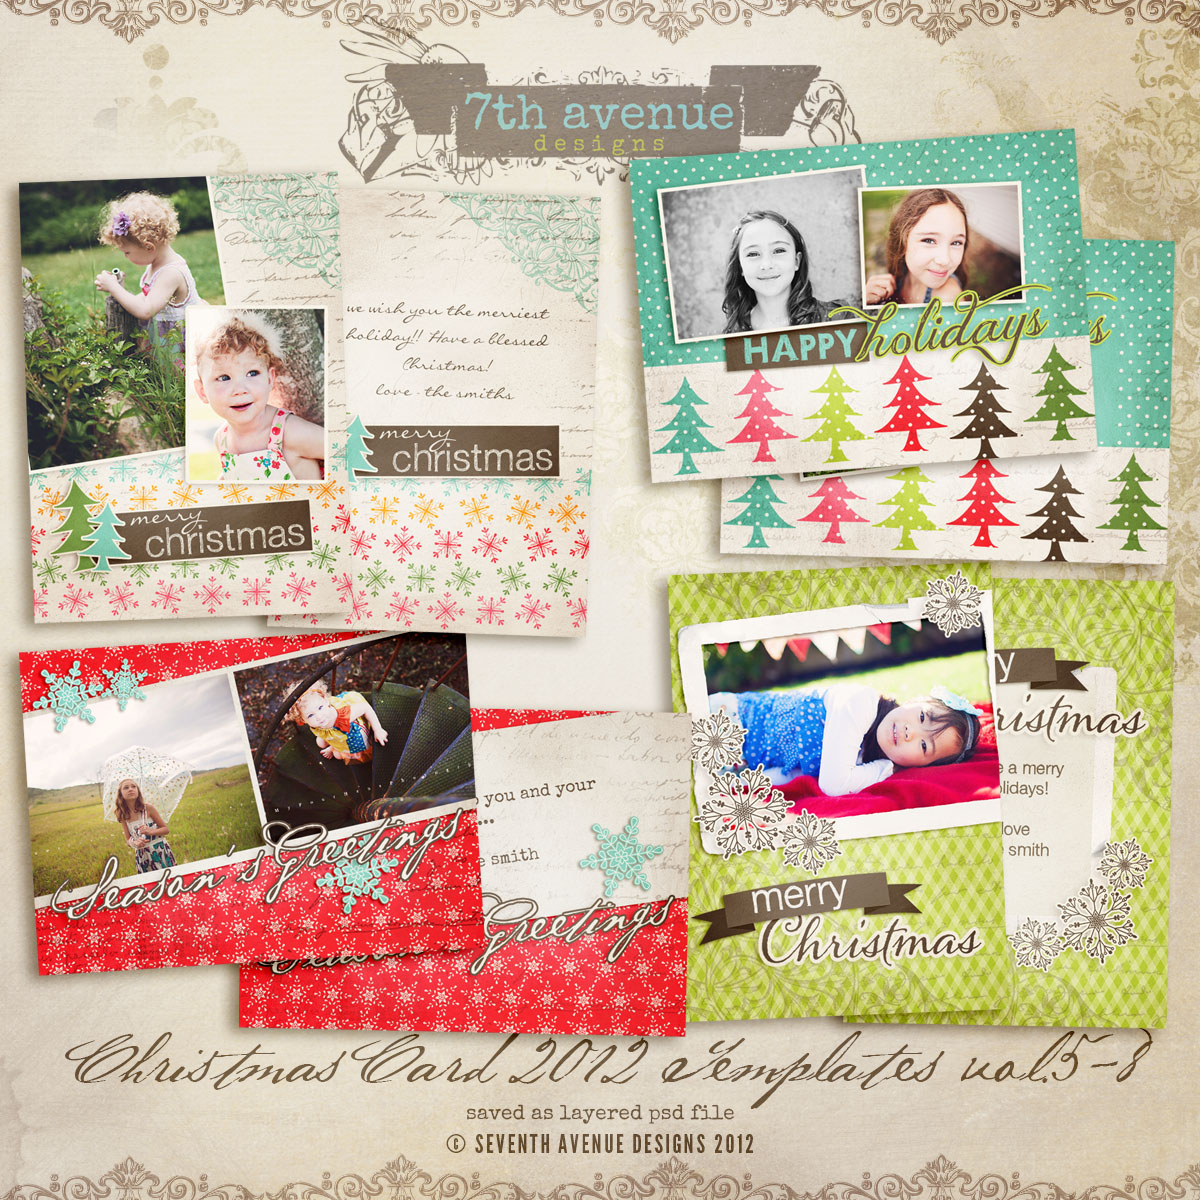 2012 Christmas Card Templates vol.5-8 -- 7x5 inch card template